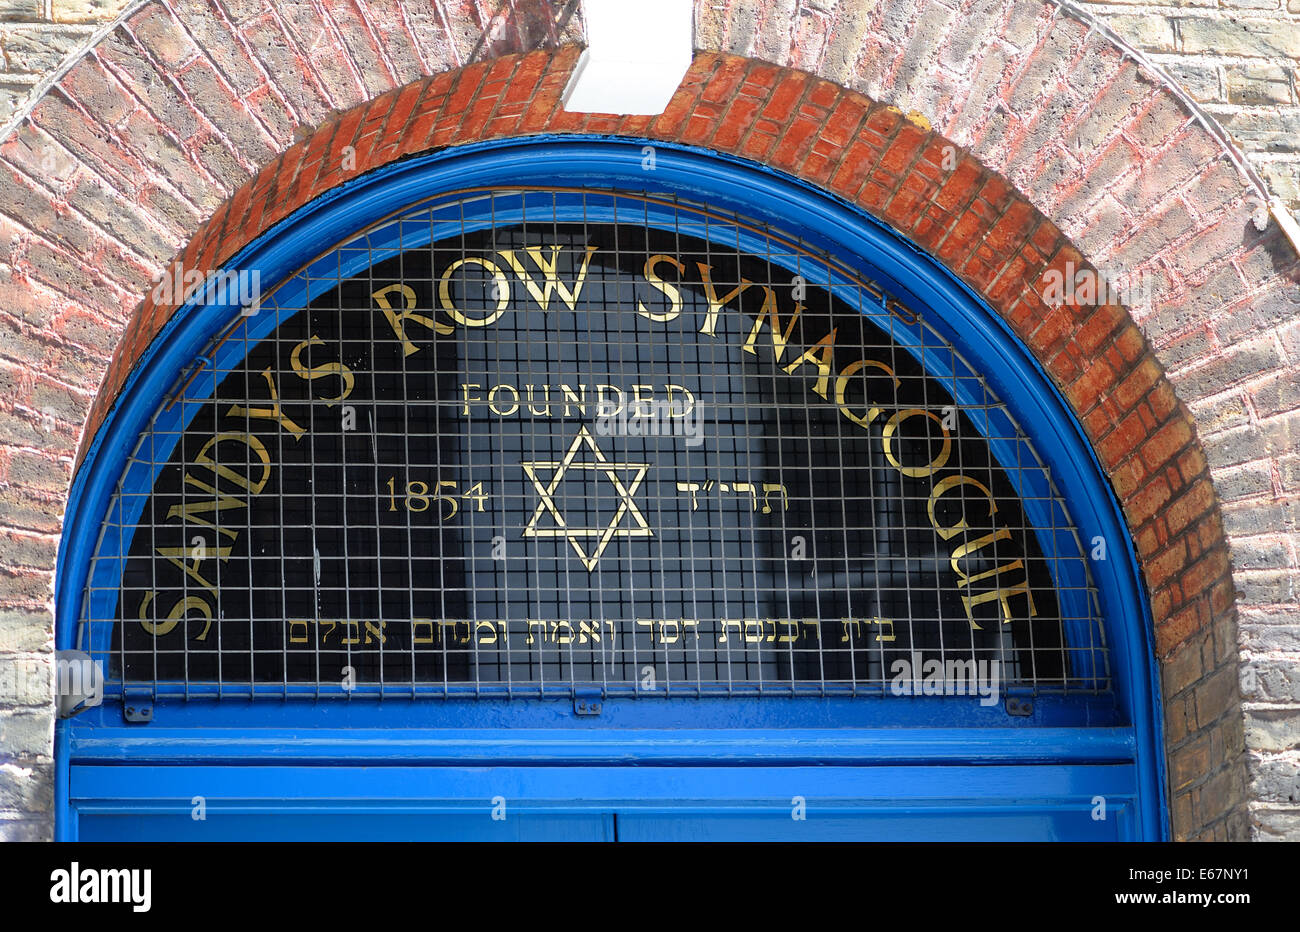 Wire mesh protecting the windows of the Sandys Row Synagogue. London, UK - Stock Image